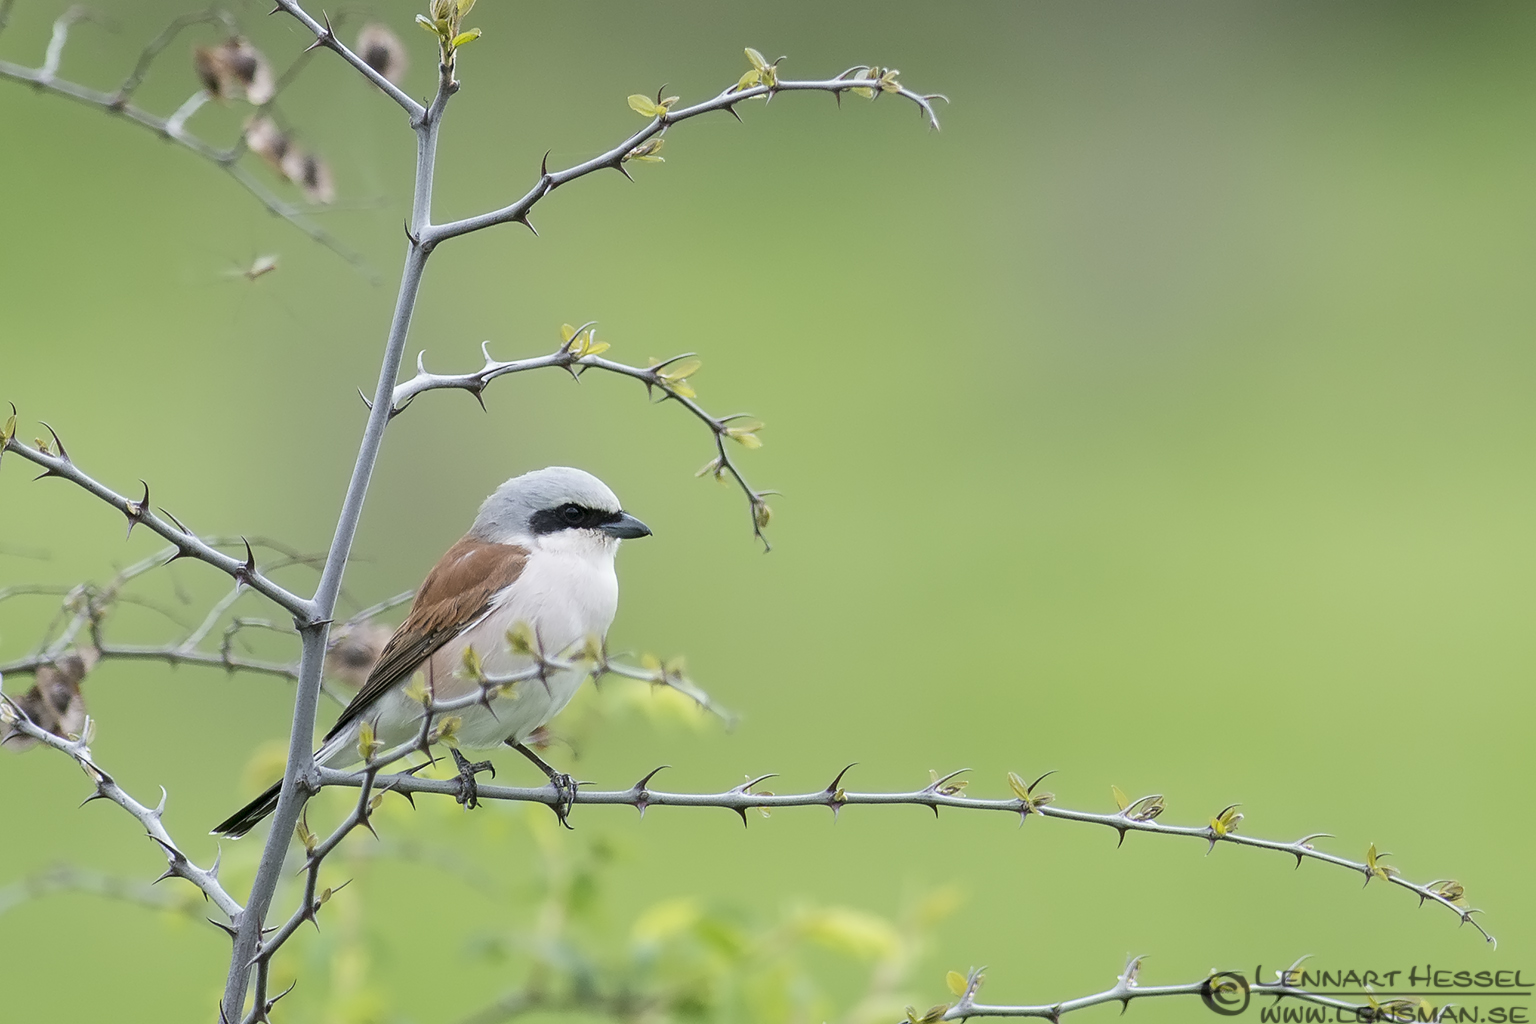 Red-backed Shrike in Bulgaria